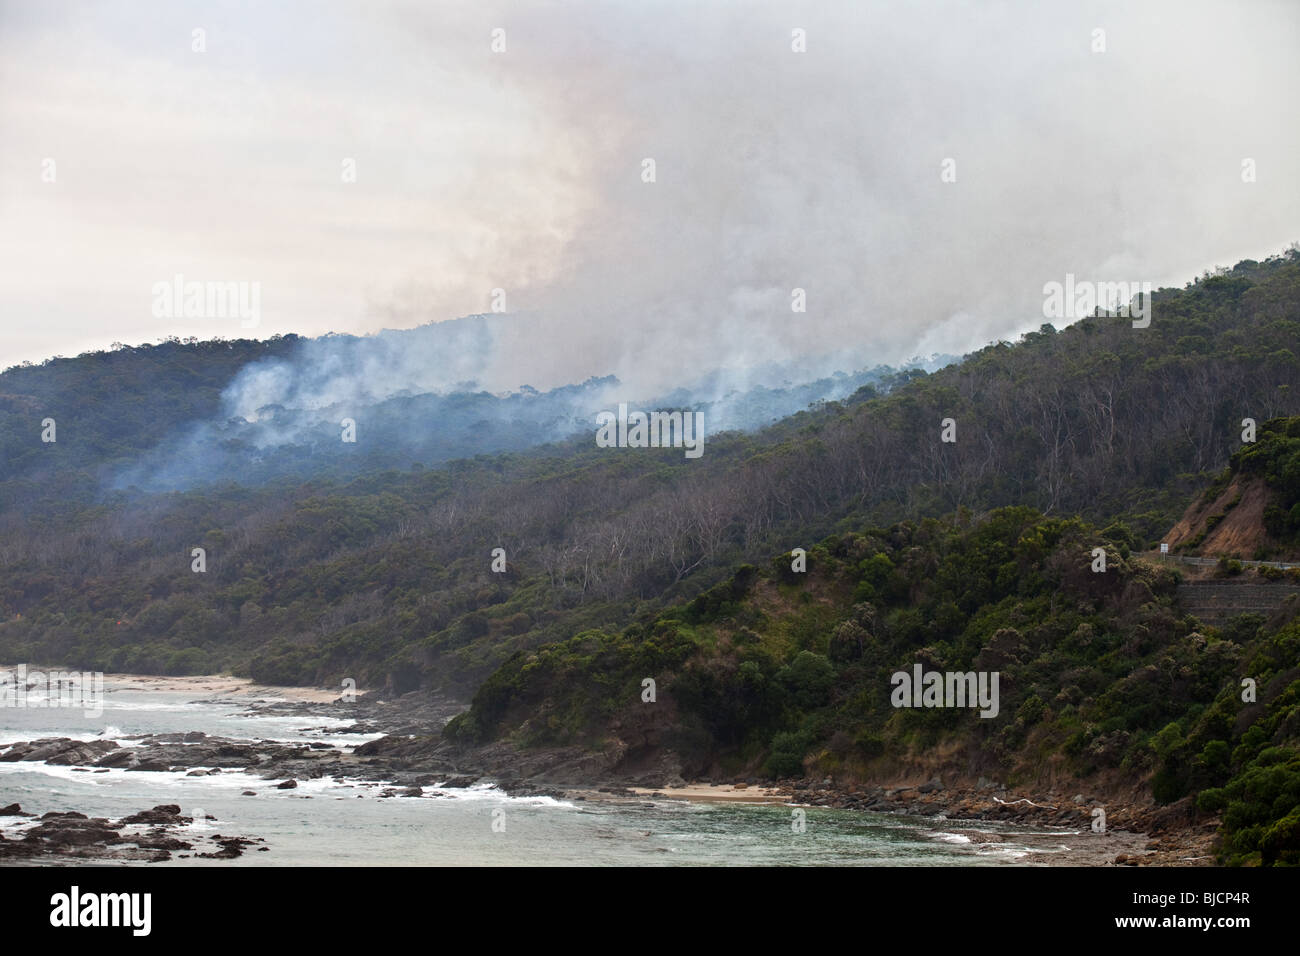 Eucalyptus forest fire in Great Otway National Park, Victoria, Australia - Stock Image